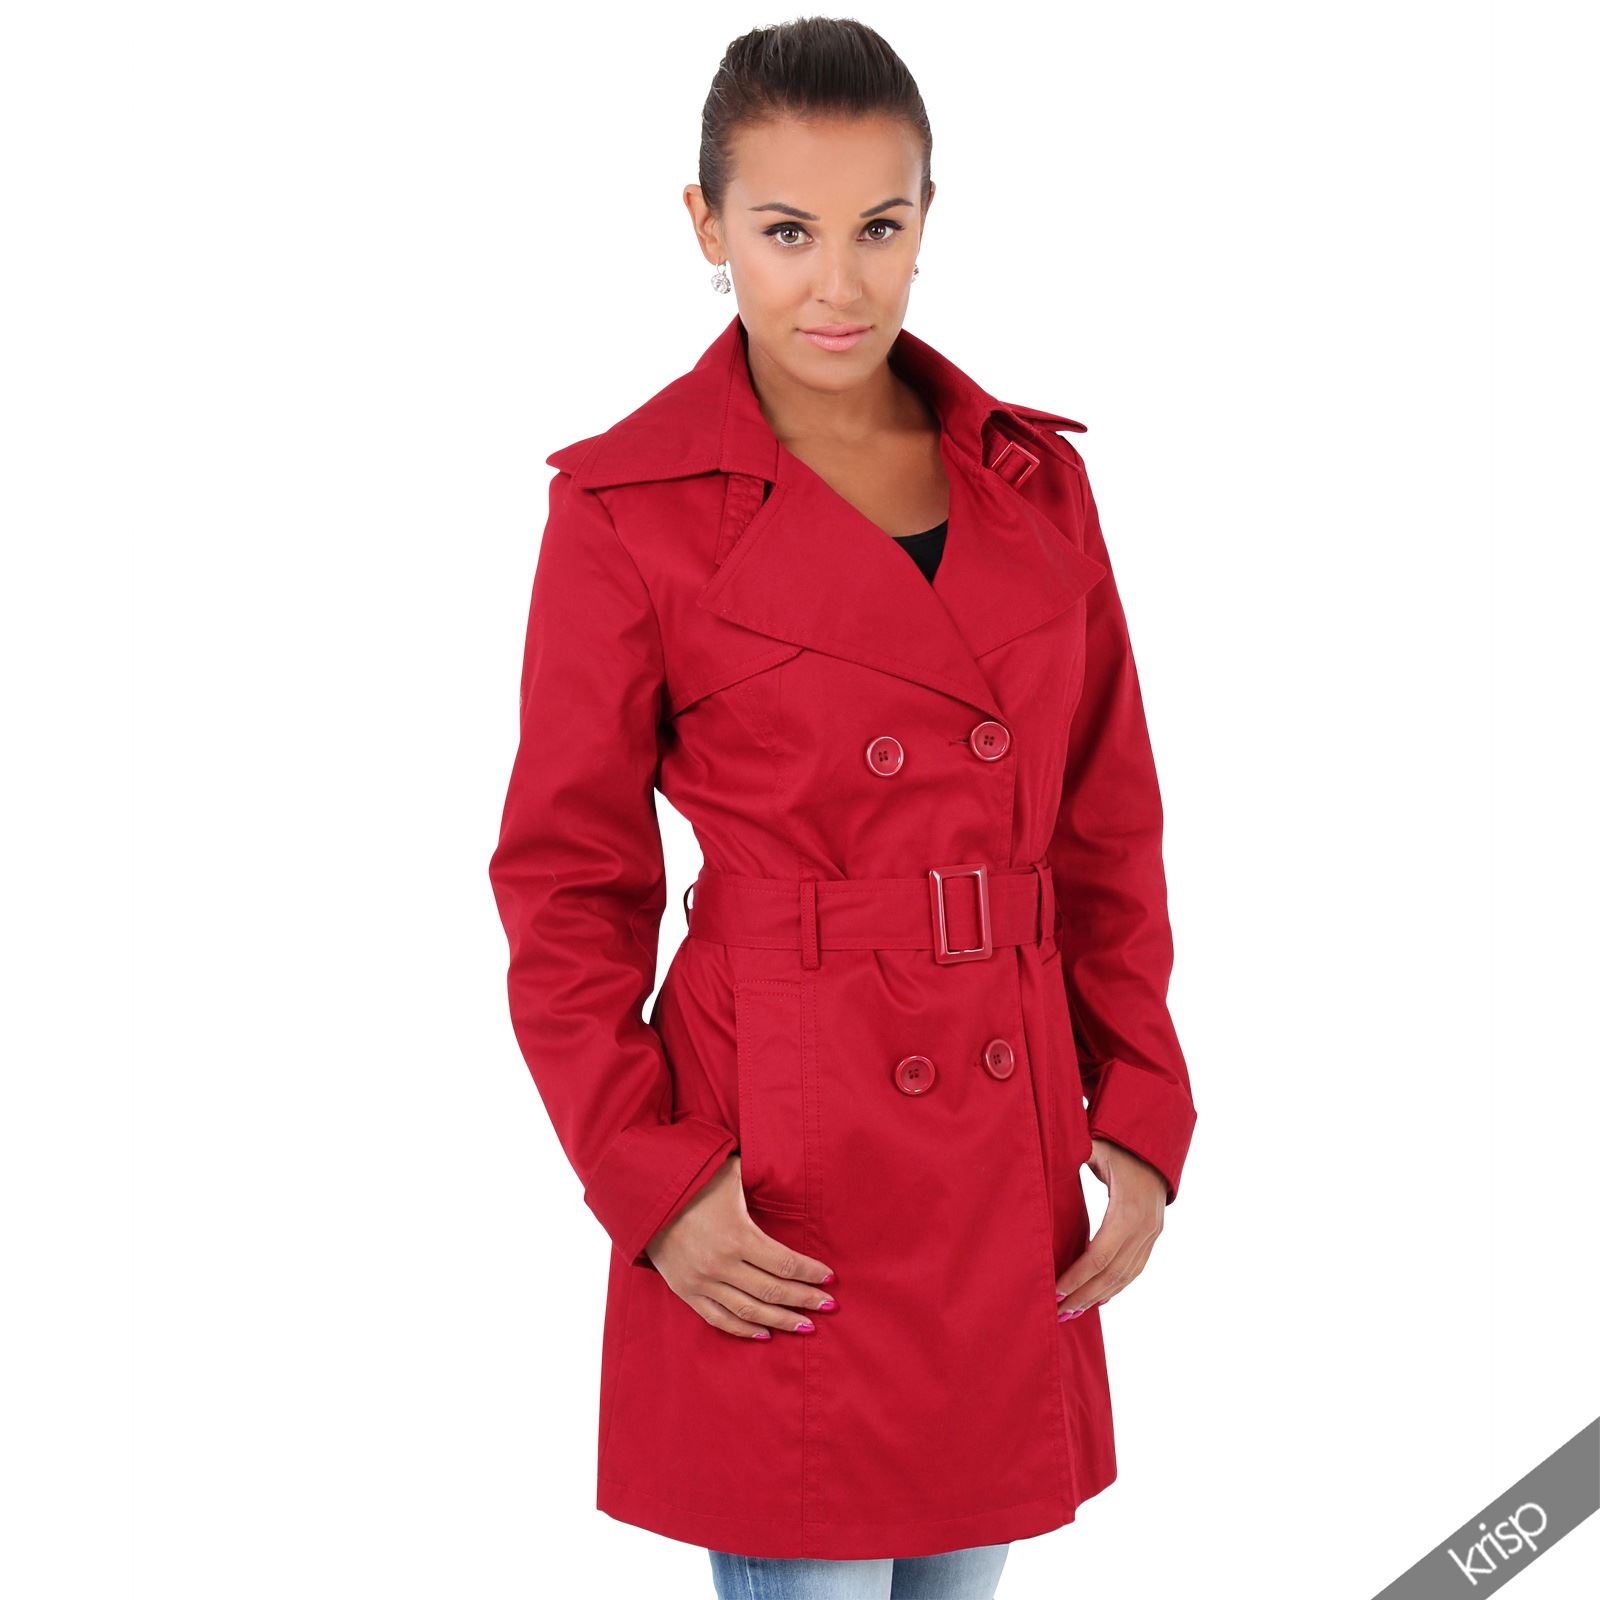 damen leichter trenchcoat mantel regenjacke kurzer sommermantel bergangsjacke ebay. Black Bedroom Furniture Sets. Home Design Ideas